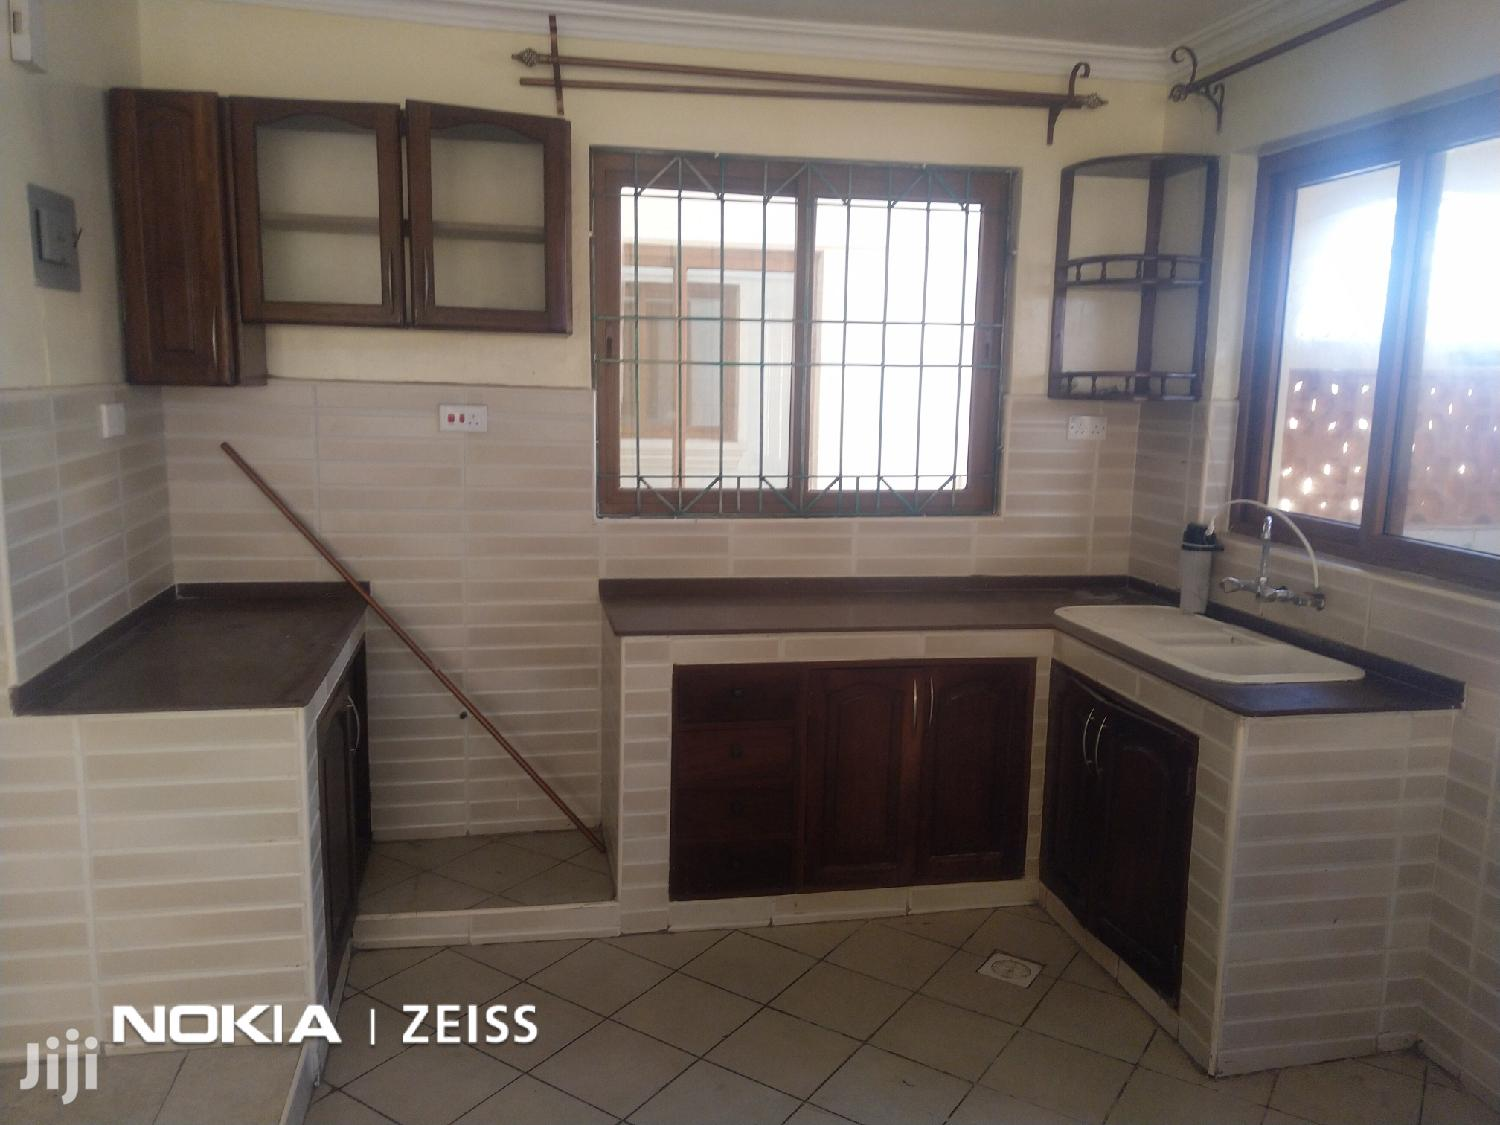 Nyali to Let:2br,1ensuite Modern Flat Short Distance to Bch | Houses & Apartments For Rent for sale in Nyali, Mombasa, Kenya